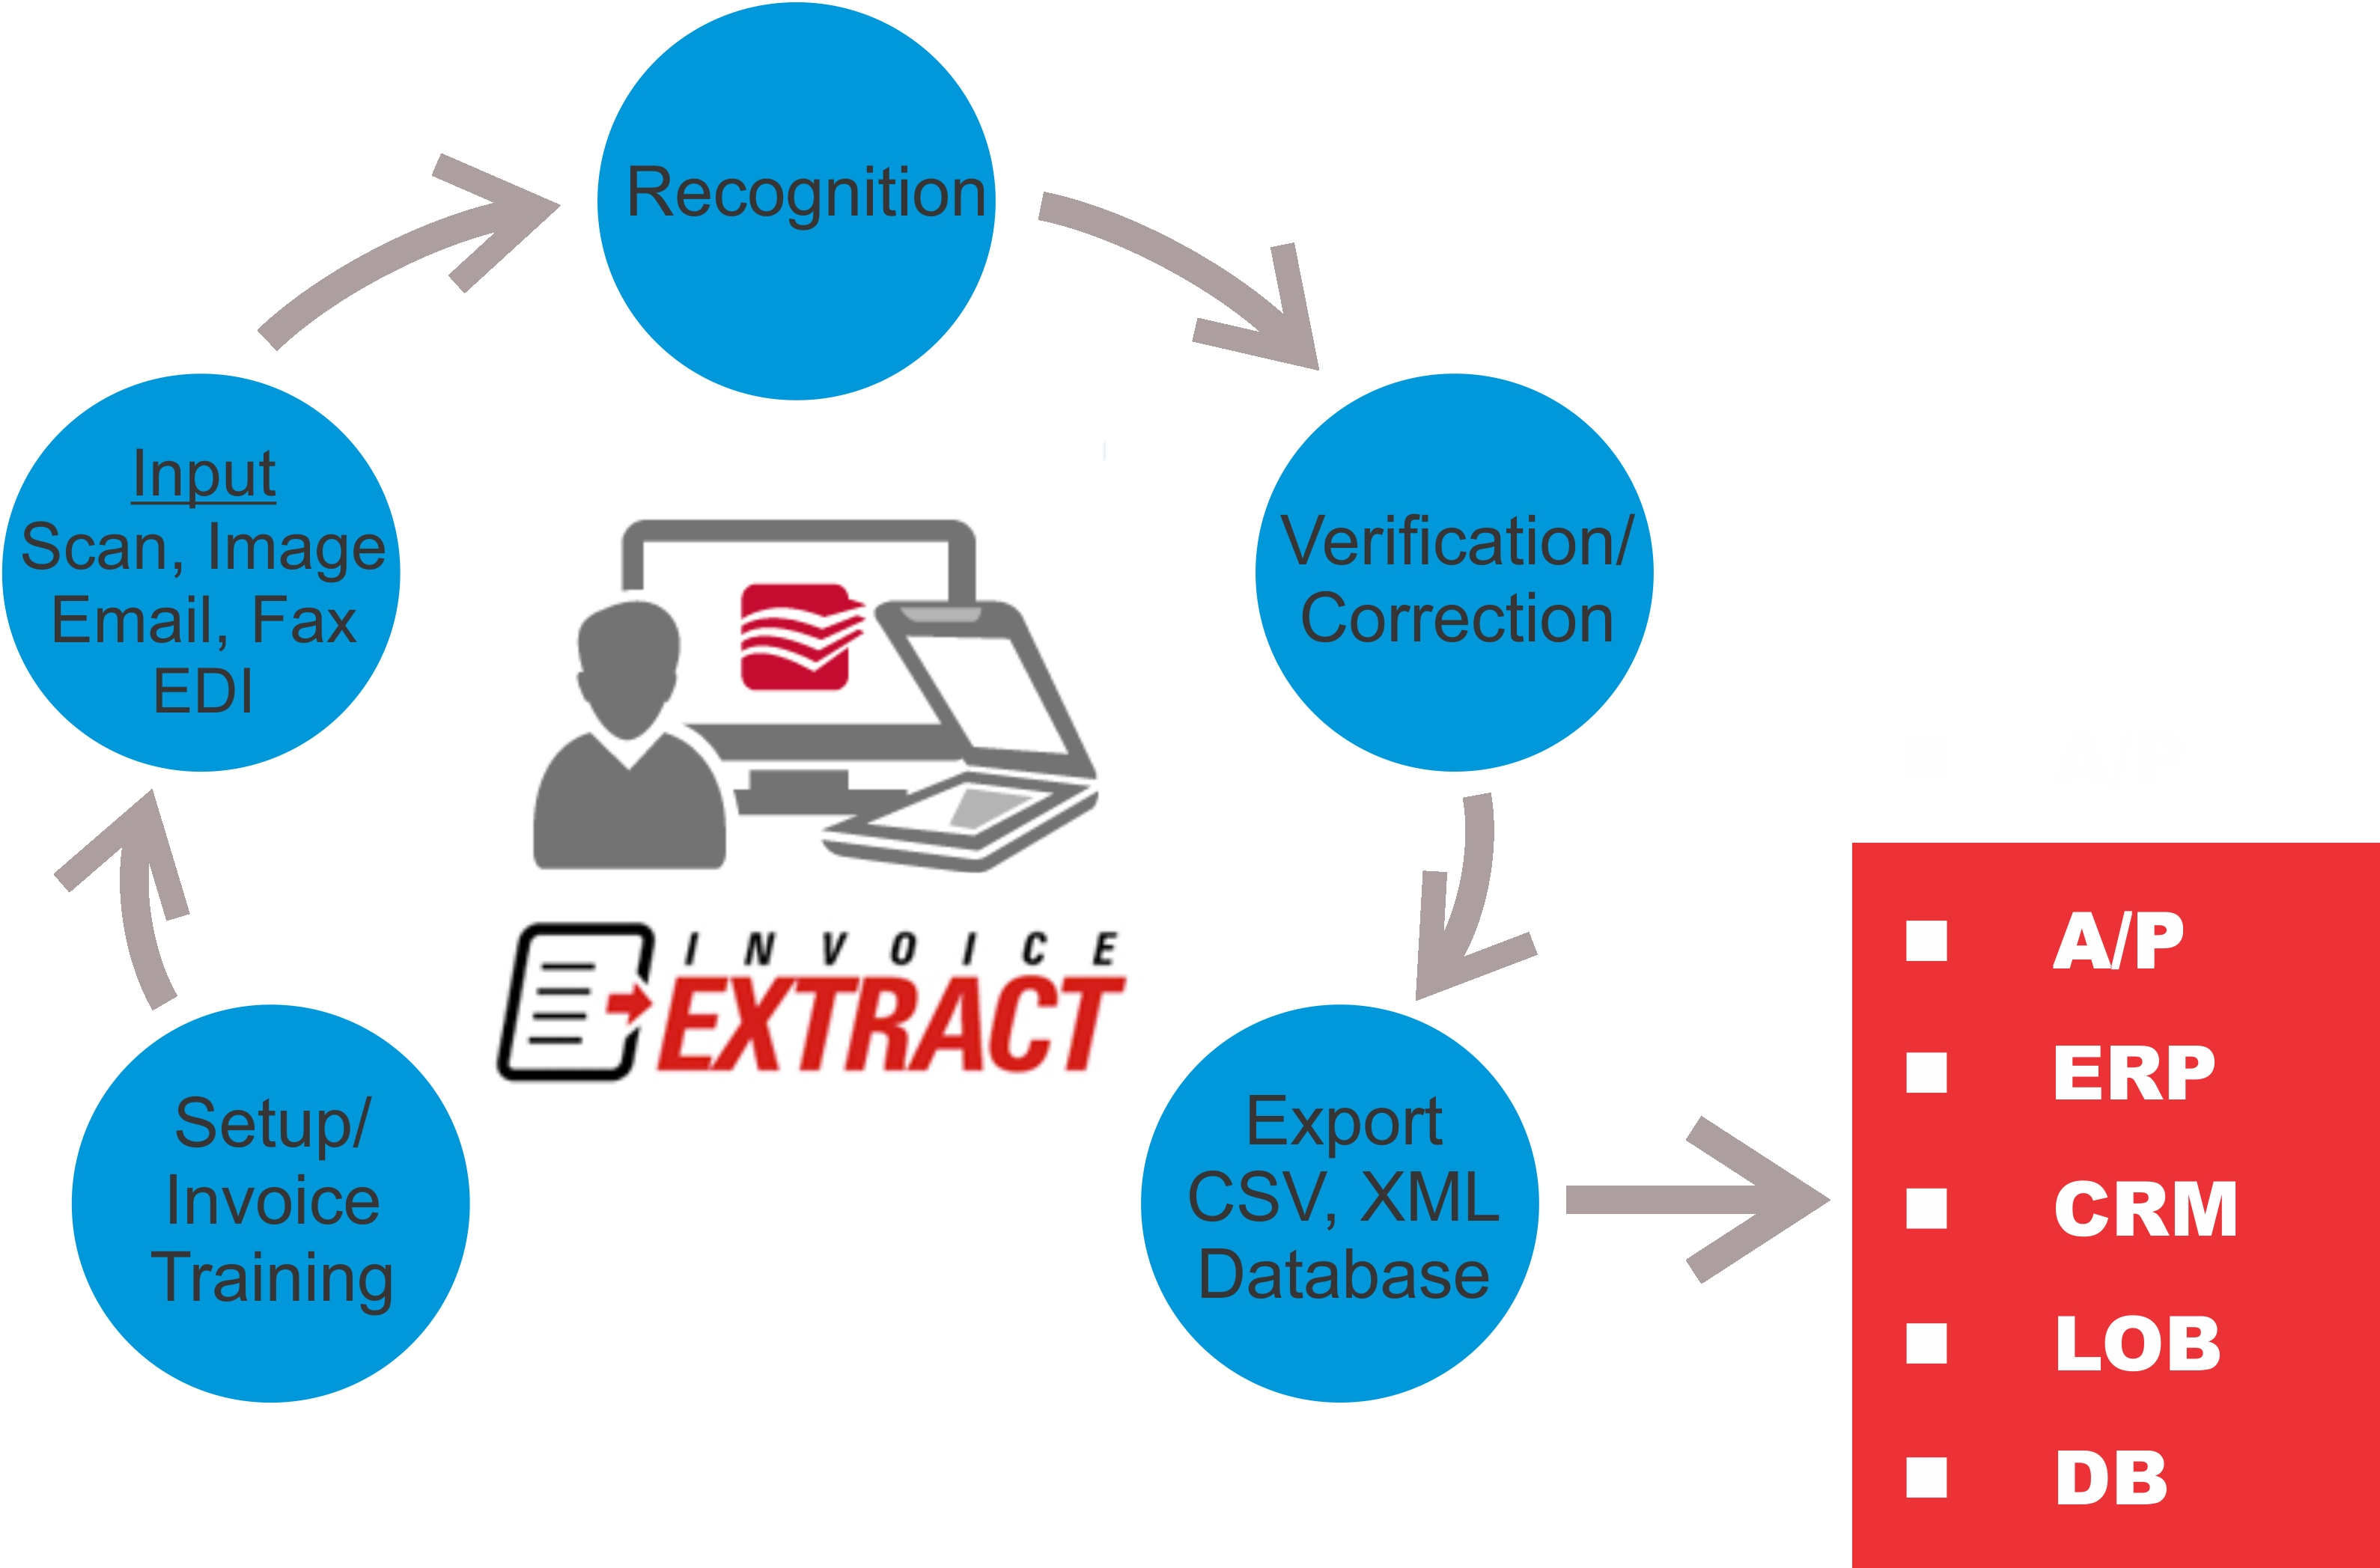 ocr invoice processing service vancouver electronic data capture invoice scanning solutions